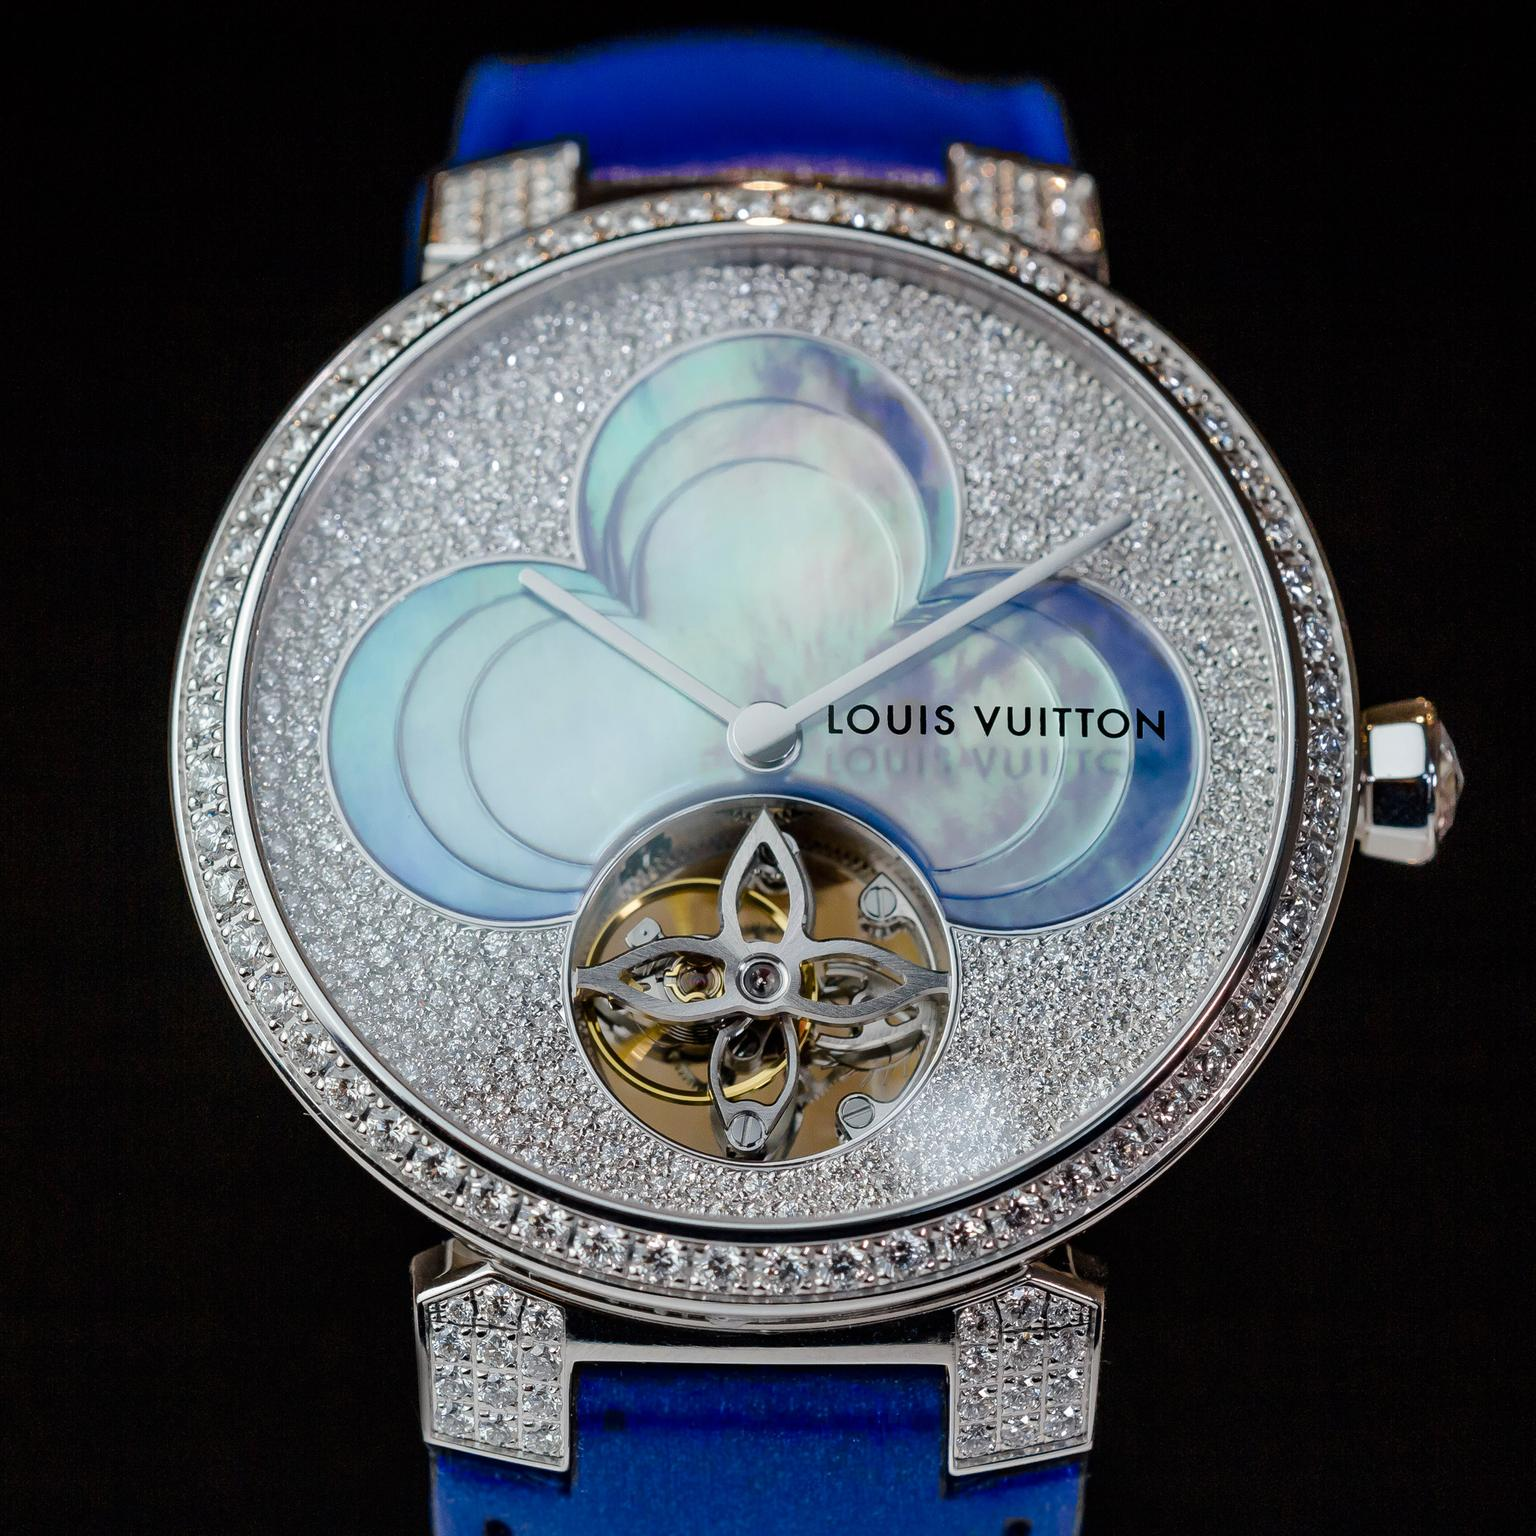 Louis Vuitton Tambour diamond watch in blue